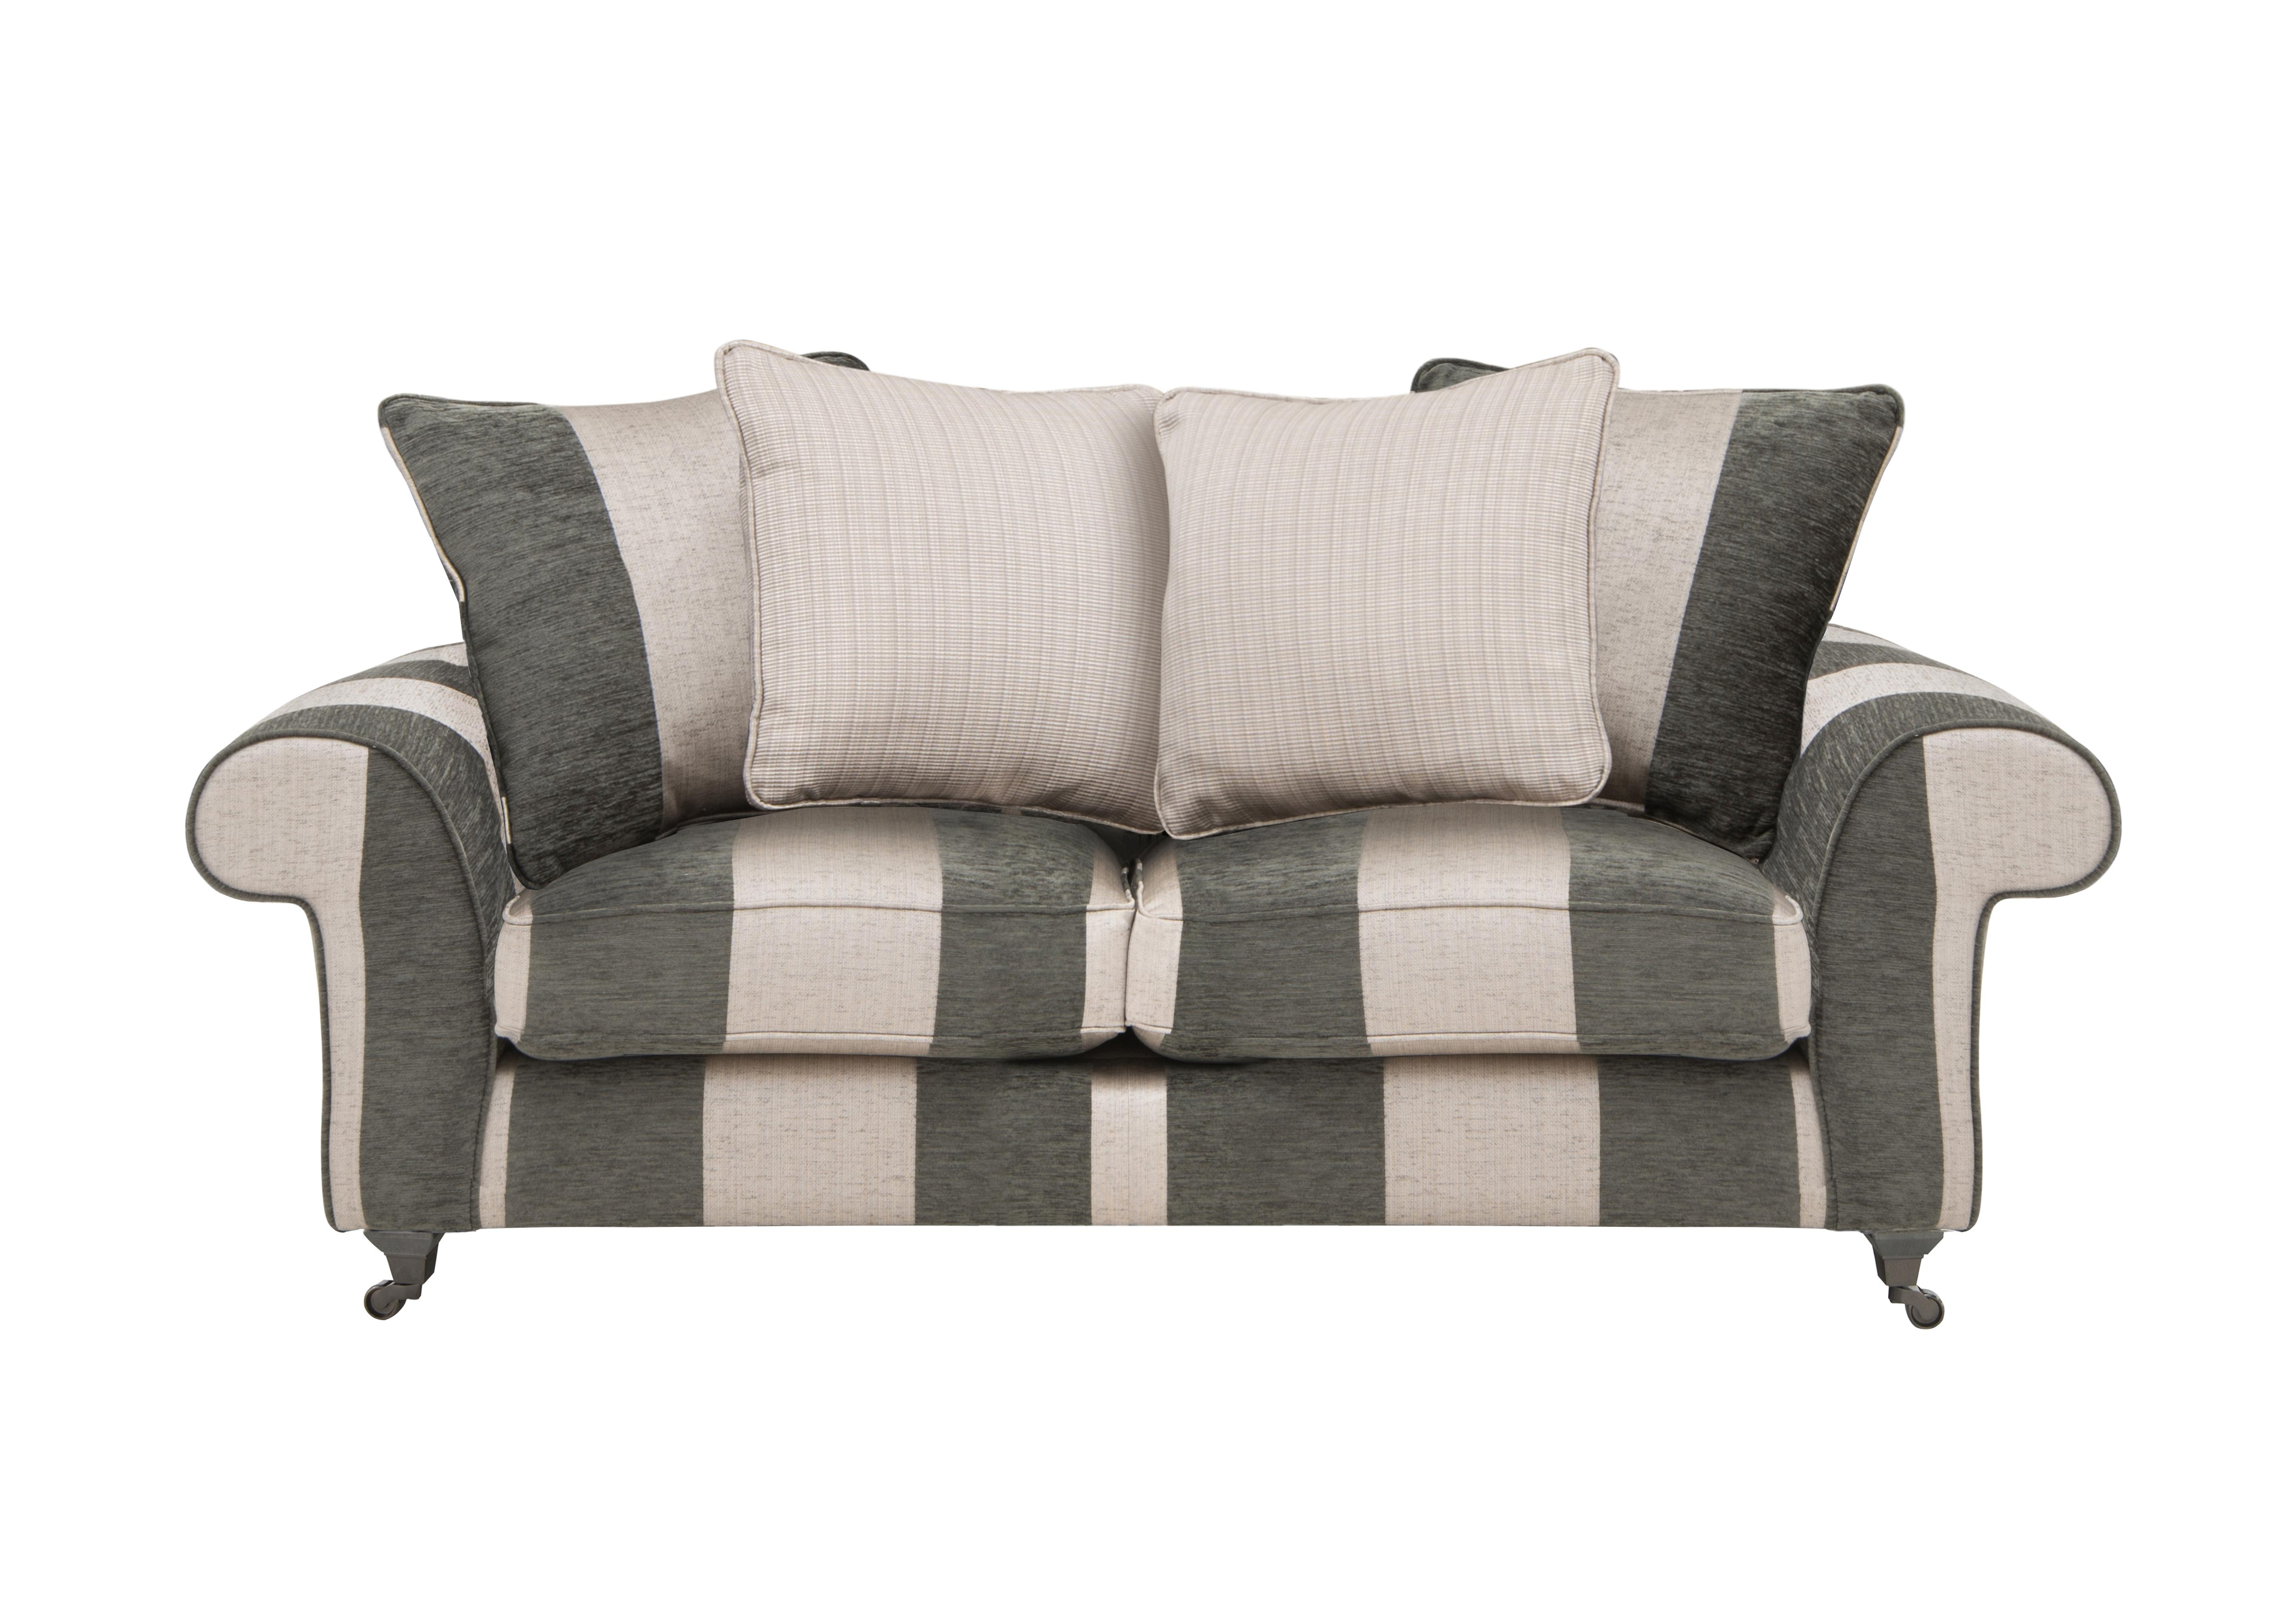 Wellington 3 Seater Pillow Back Fabric Sofa - Furniture Village